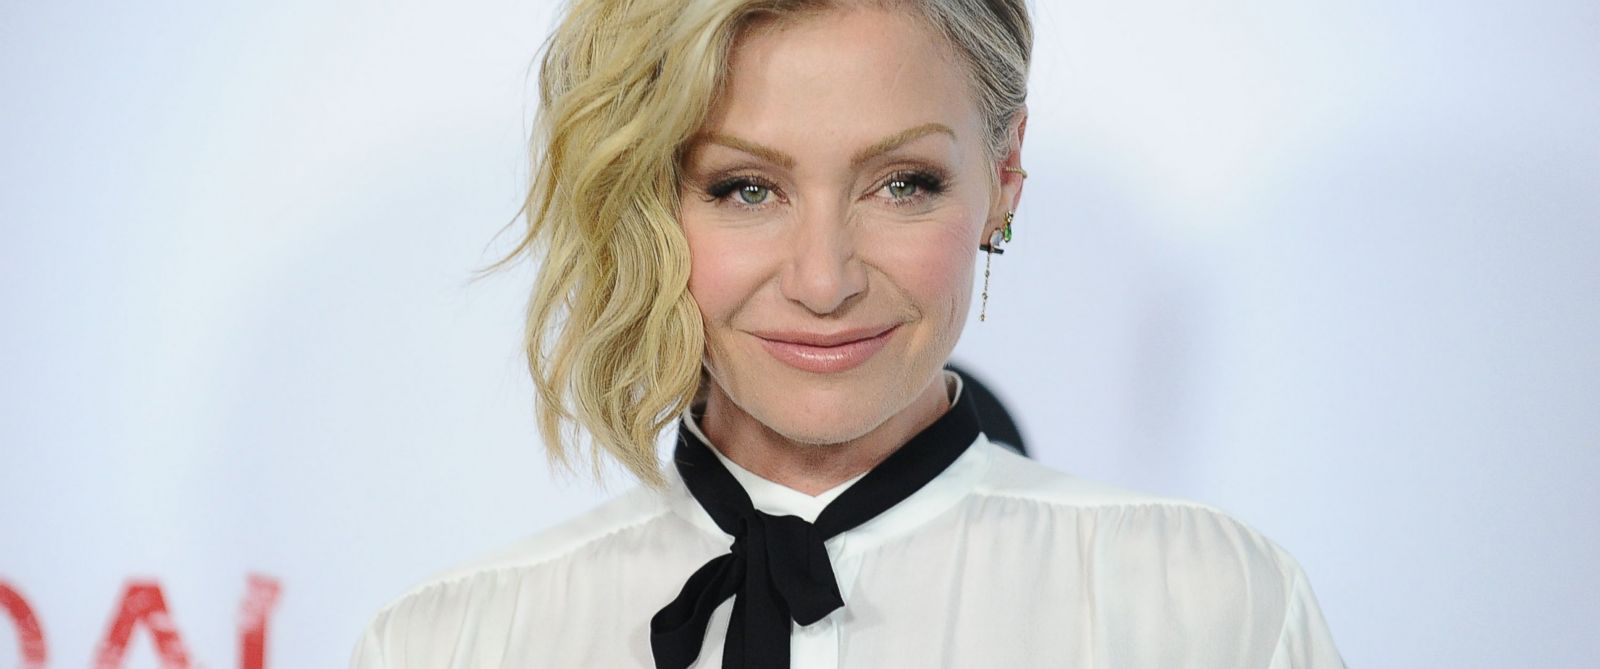 Image Result For Portia De Rossi On Her Painful Struggle With Bulimia